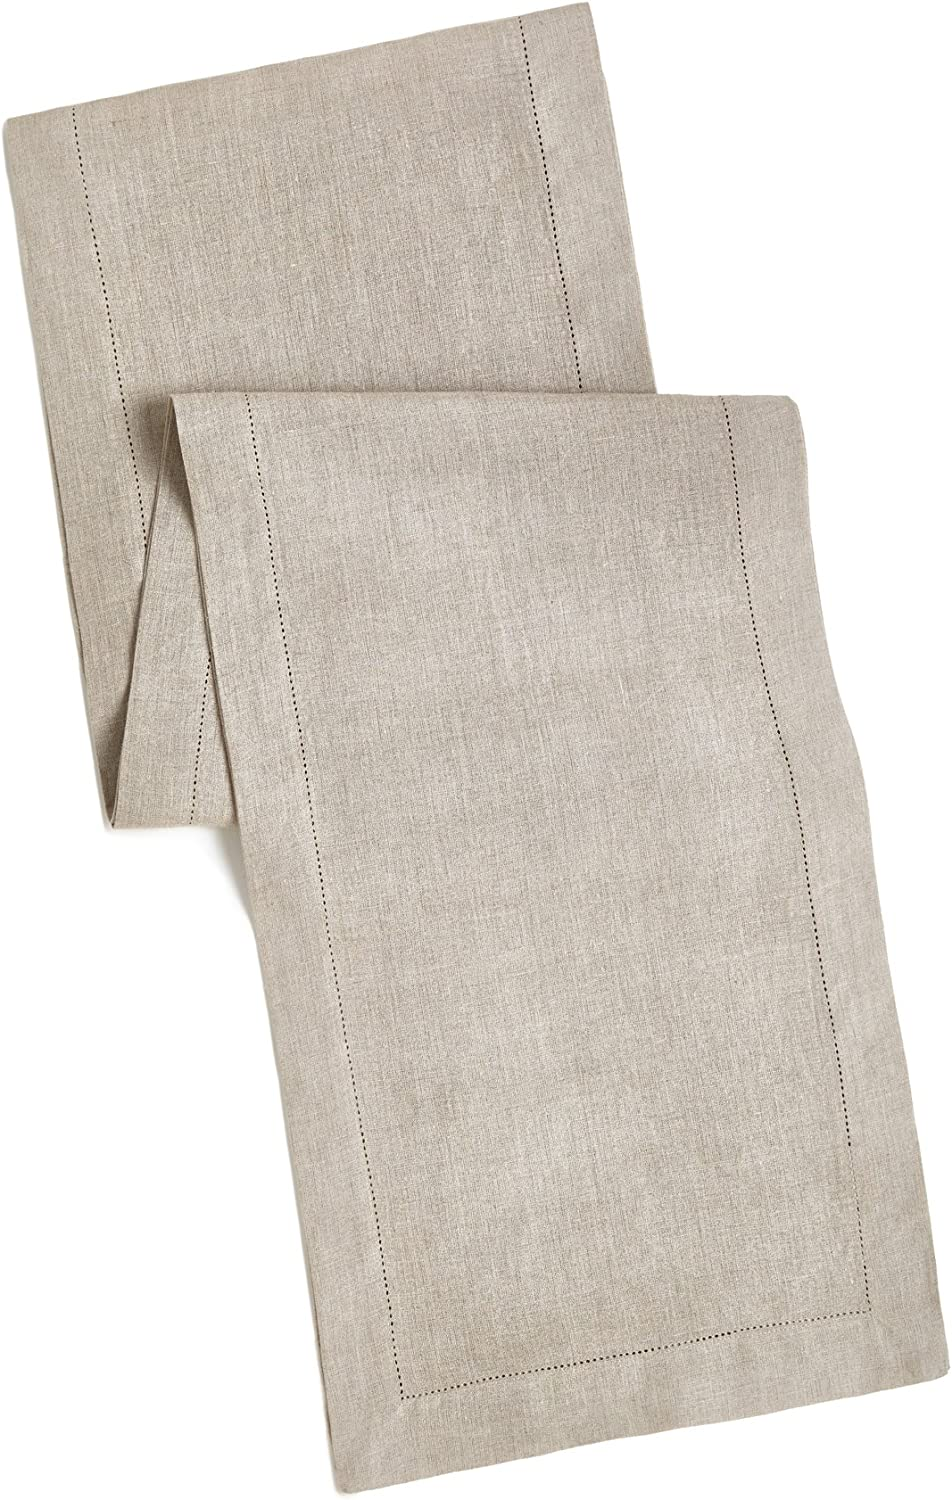 100 Linen Hemstitch Table Runner Size 16x108 Charcoal Hand Crafted And Hand Stitched Table Runner With Hemstitch Detailing The Pure Linen Fabric Works Well In Both Casual And Formal